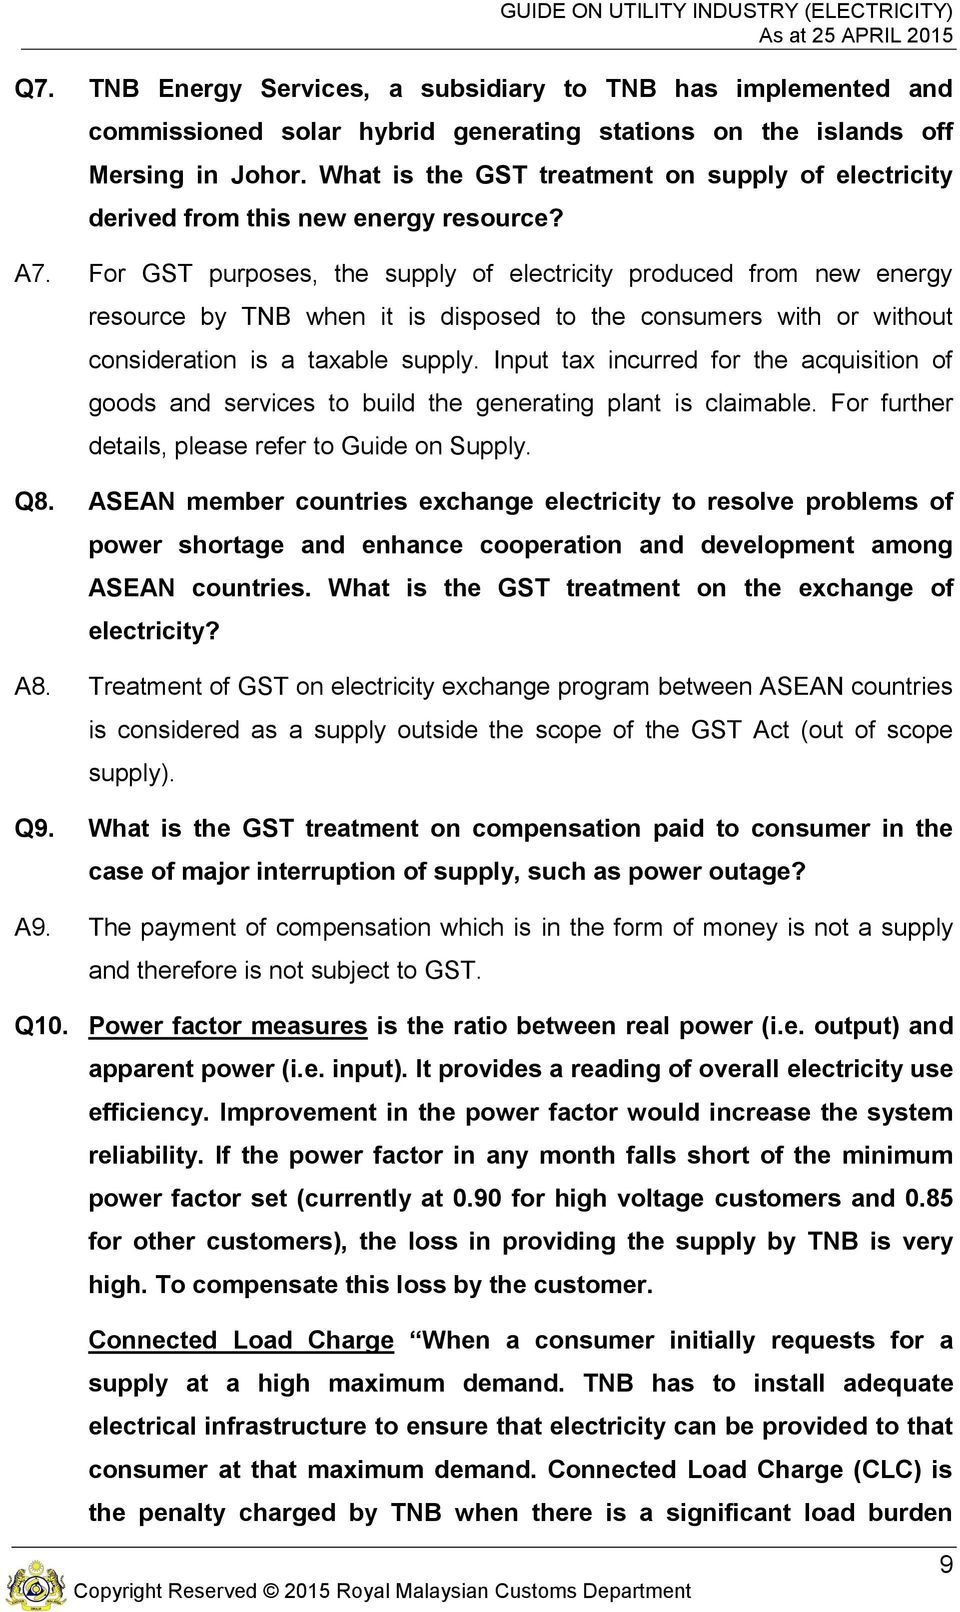 For GST purposes, the supply of electricity produced from new energy resource by TNB when it is disposed to the consumers with or without consideration is a taxable supply.